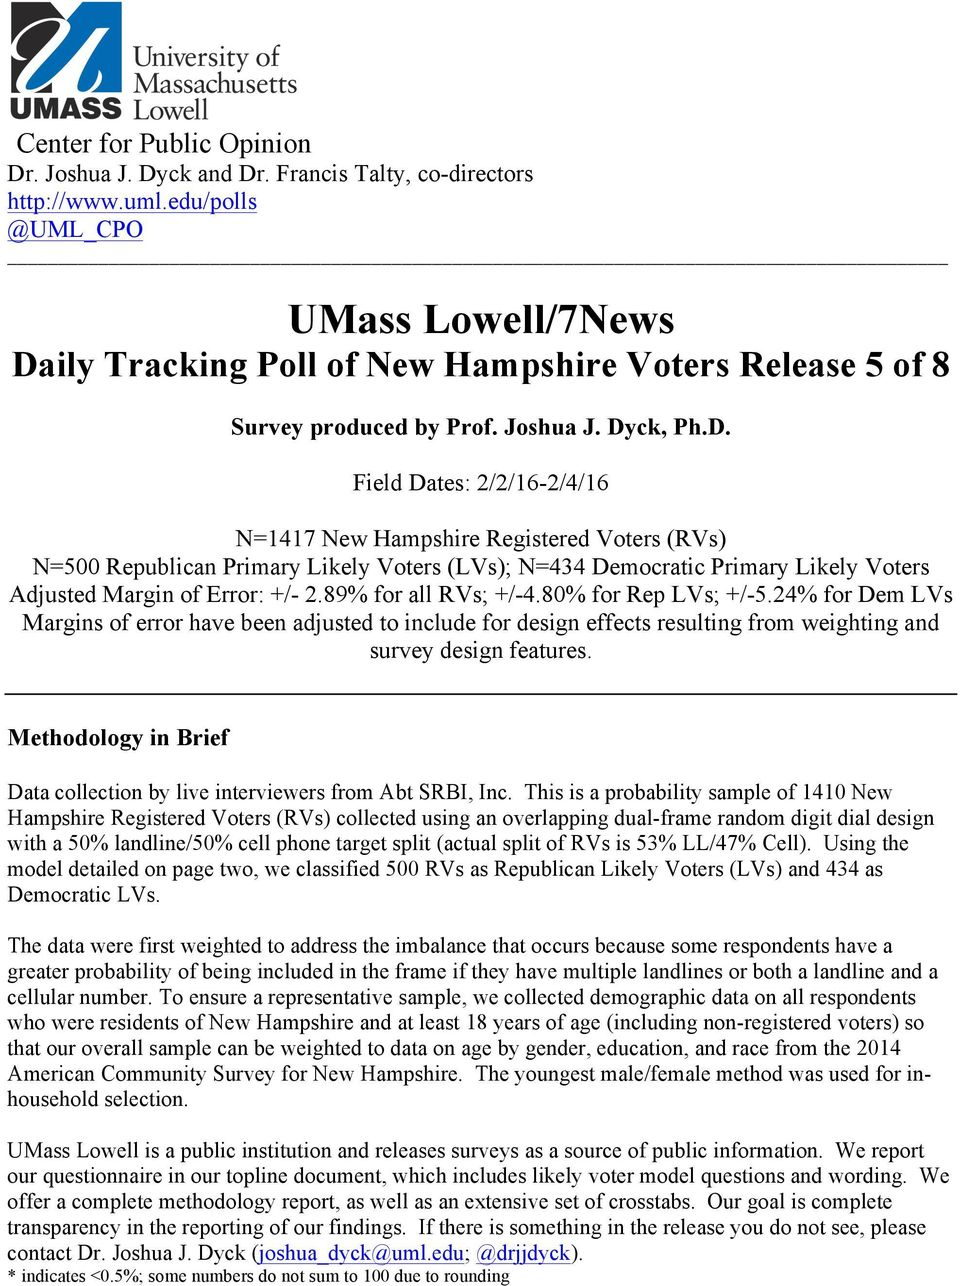 ily Tracking Poll of New Hampshire Voters Release 5 of 8 Survey produced by Prof. Joshua J. Dy